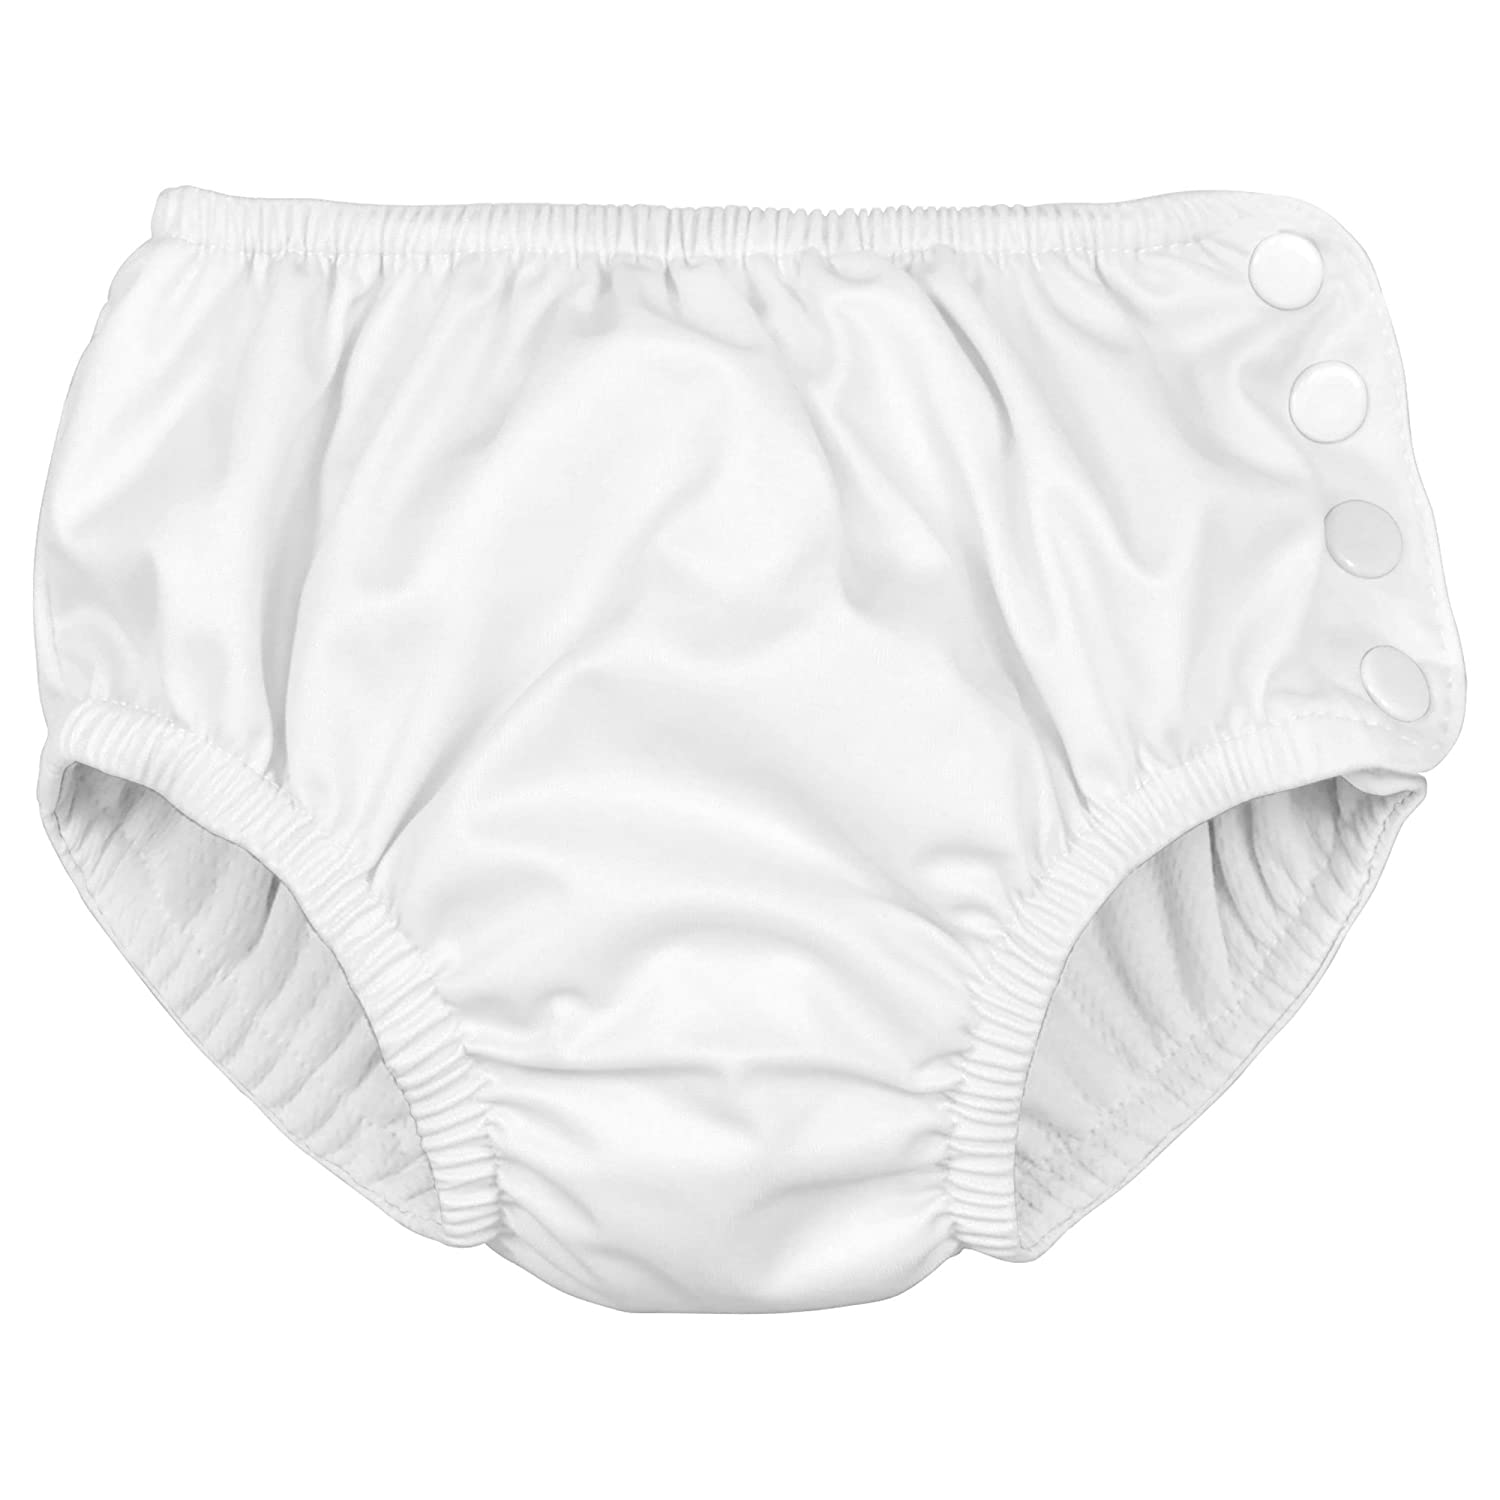 i play Boys Reusable Absorbent Swim Diapers 2 Pack